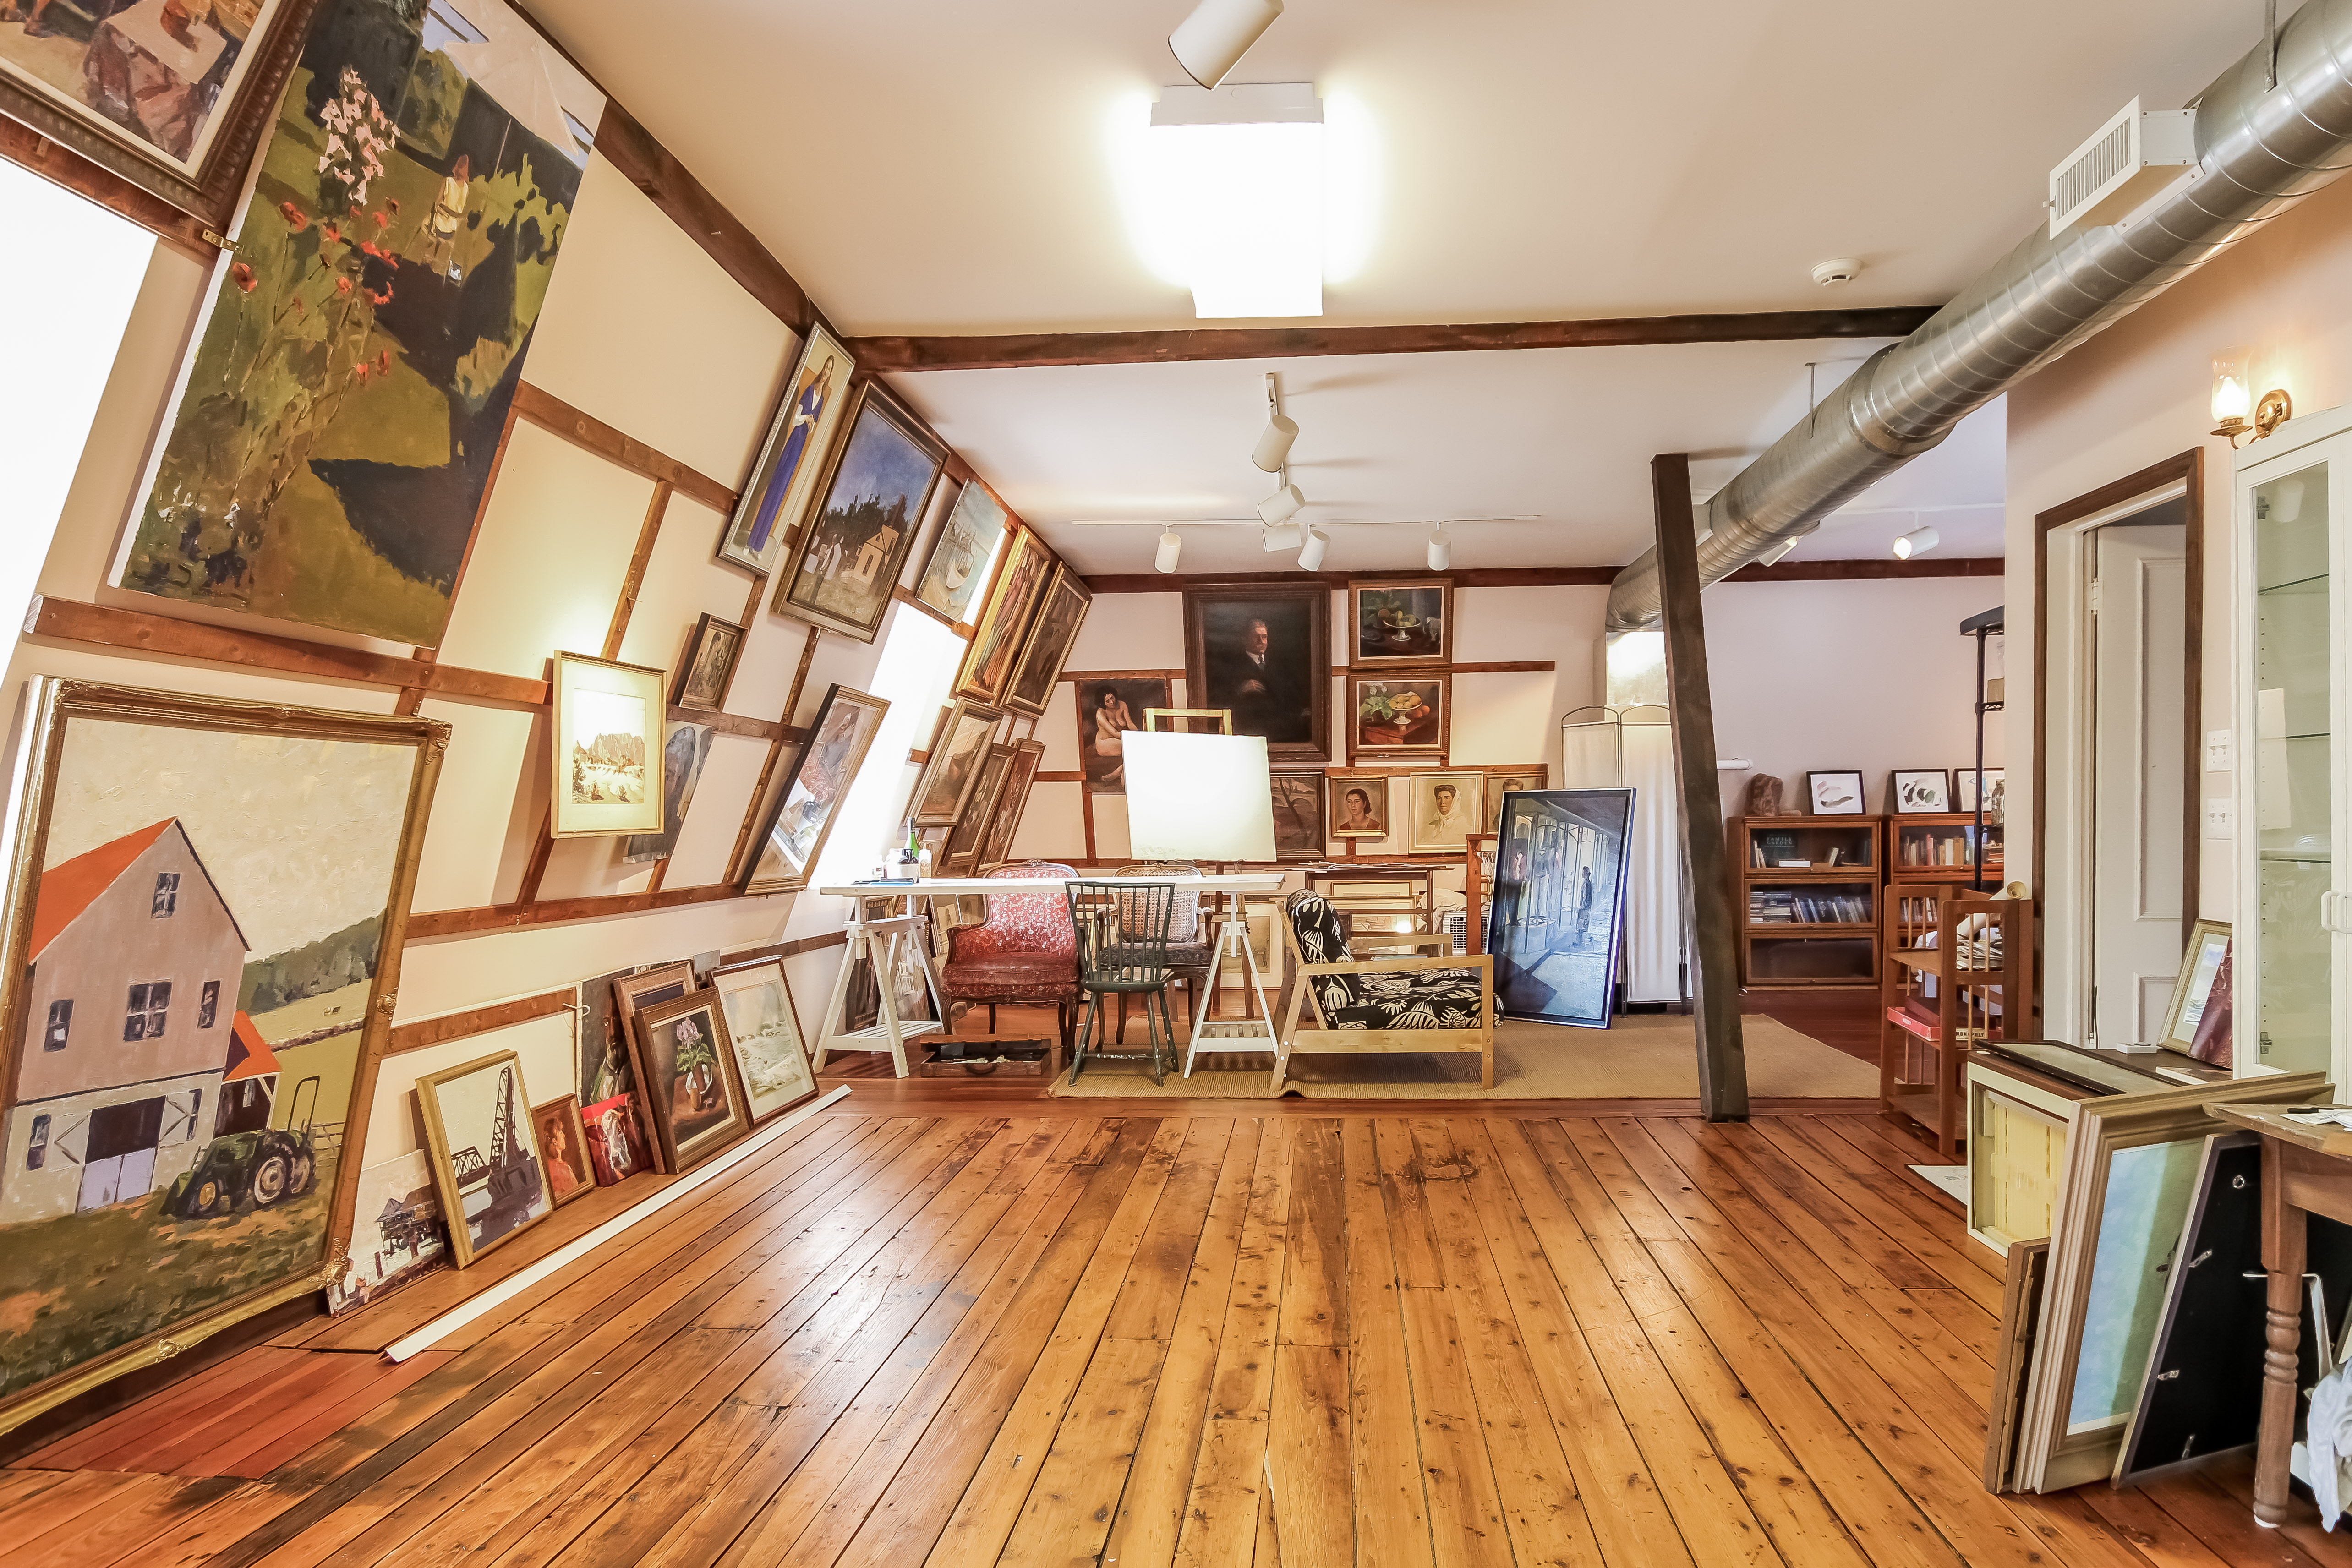 Artists will enjoy the studio located at the top of the main residence in this Victorian-era compound.